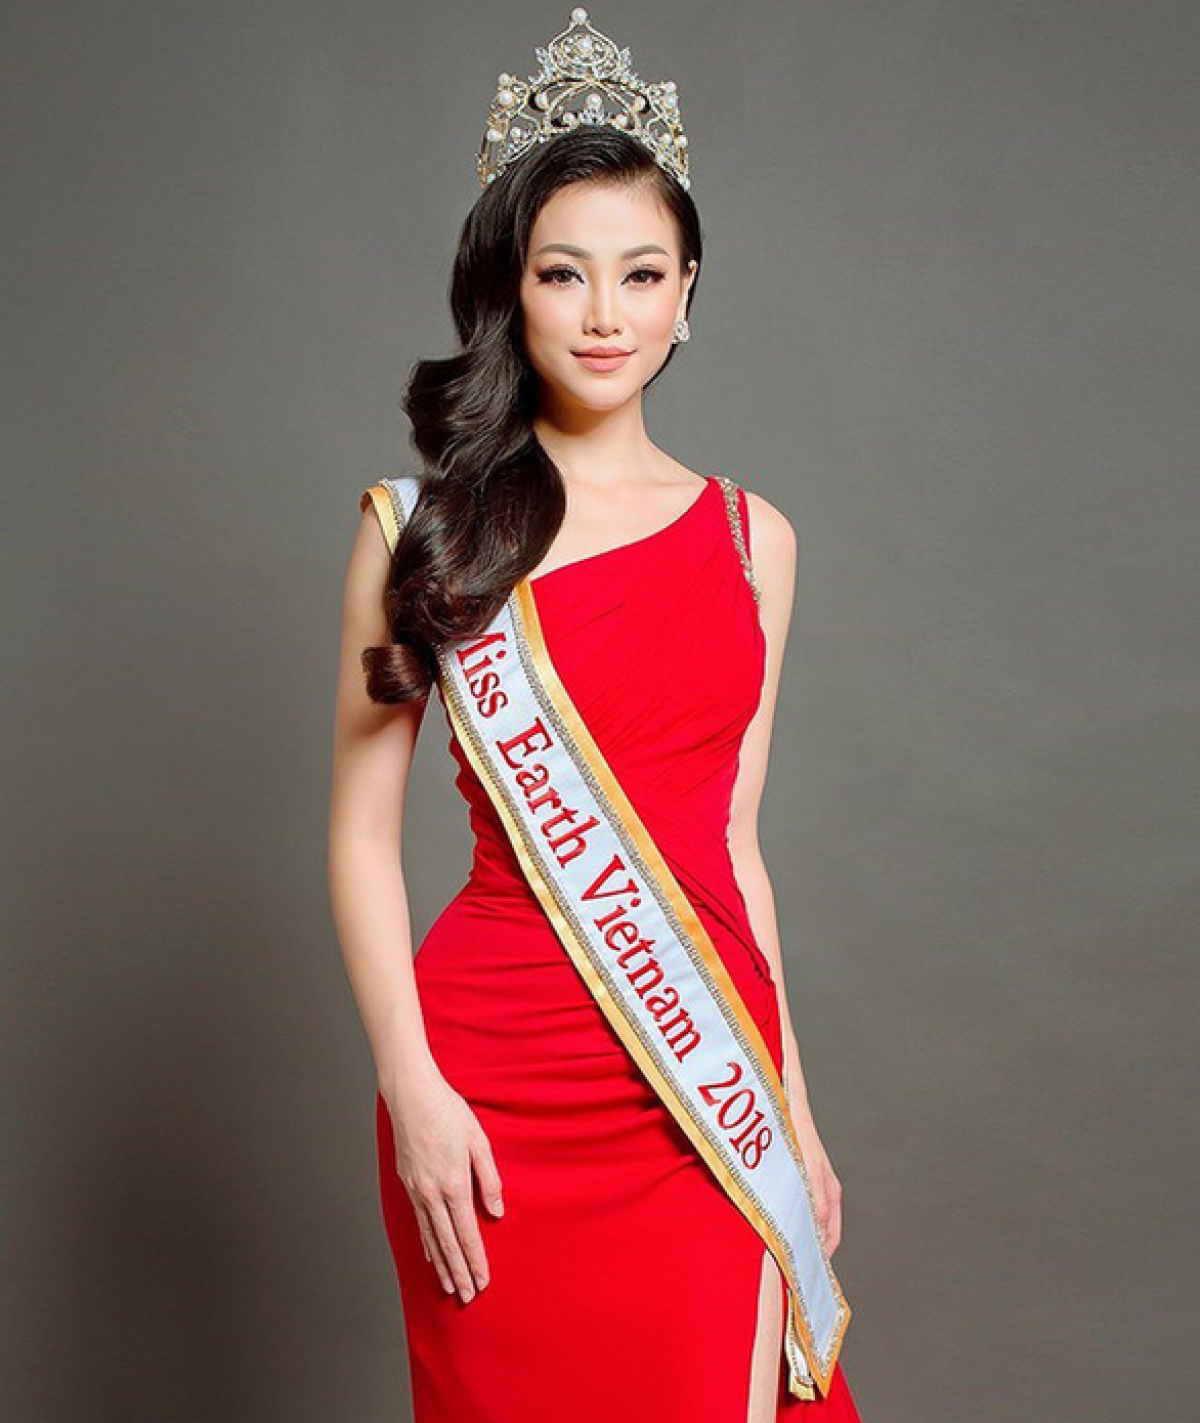 Miss Earth 2018 Phuong Khanh is chosen as a member ofMiss Philippines Earth 2021'sjudging panel.